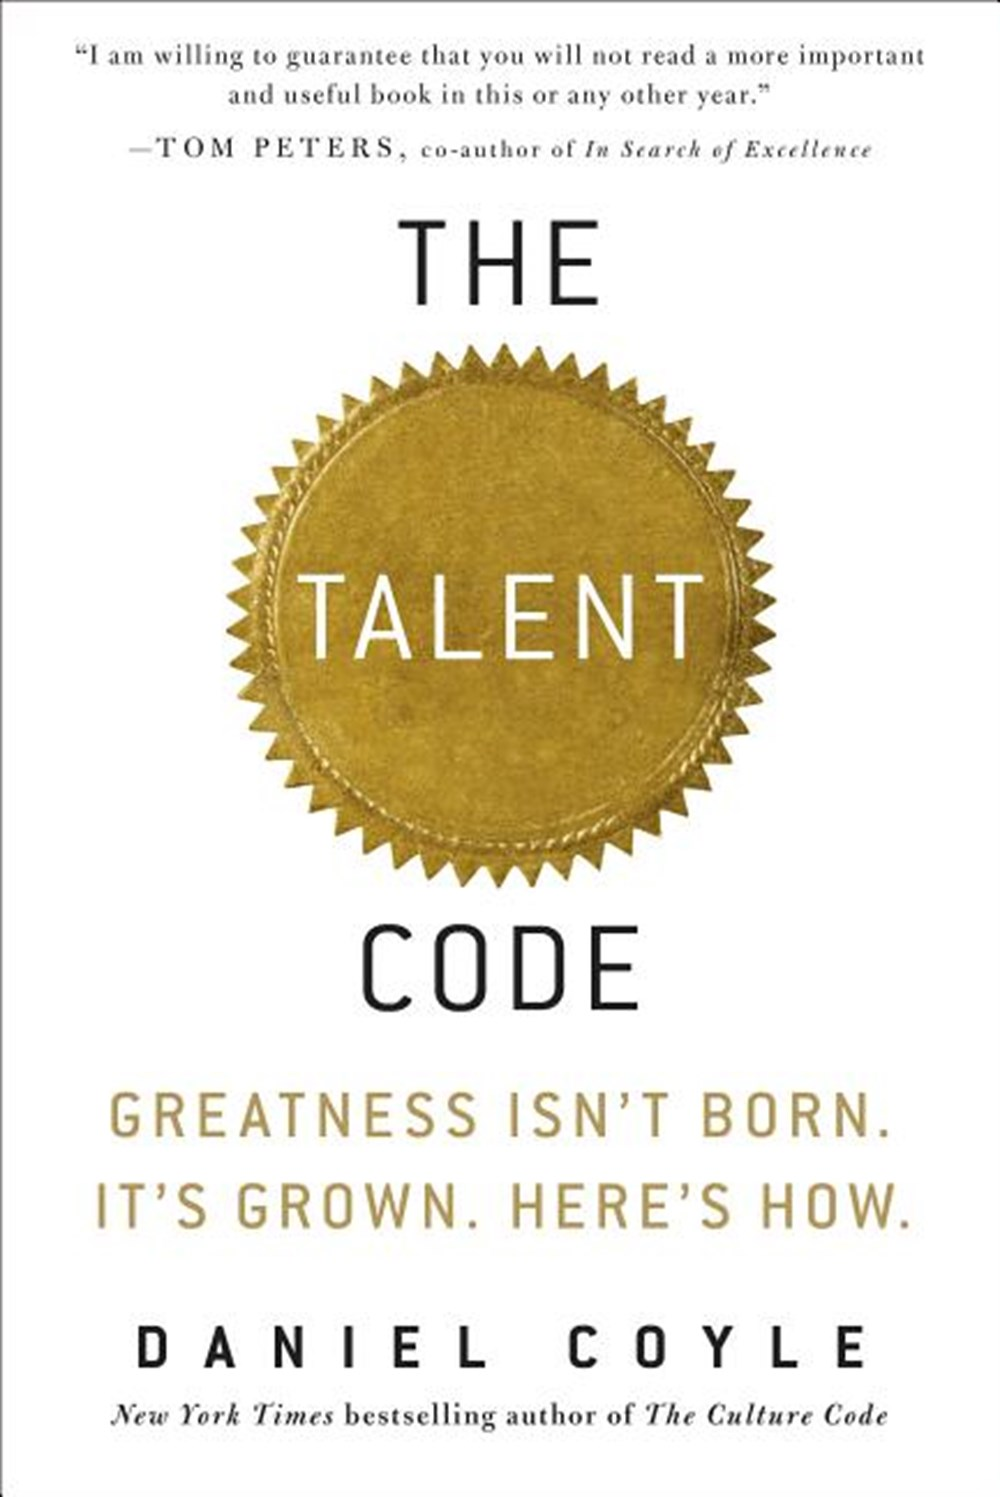 Talent Code Greatness Isn't Born. It's Grown. Here's How.